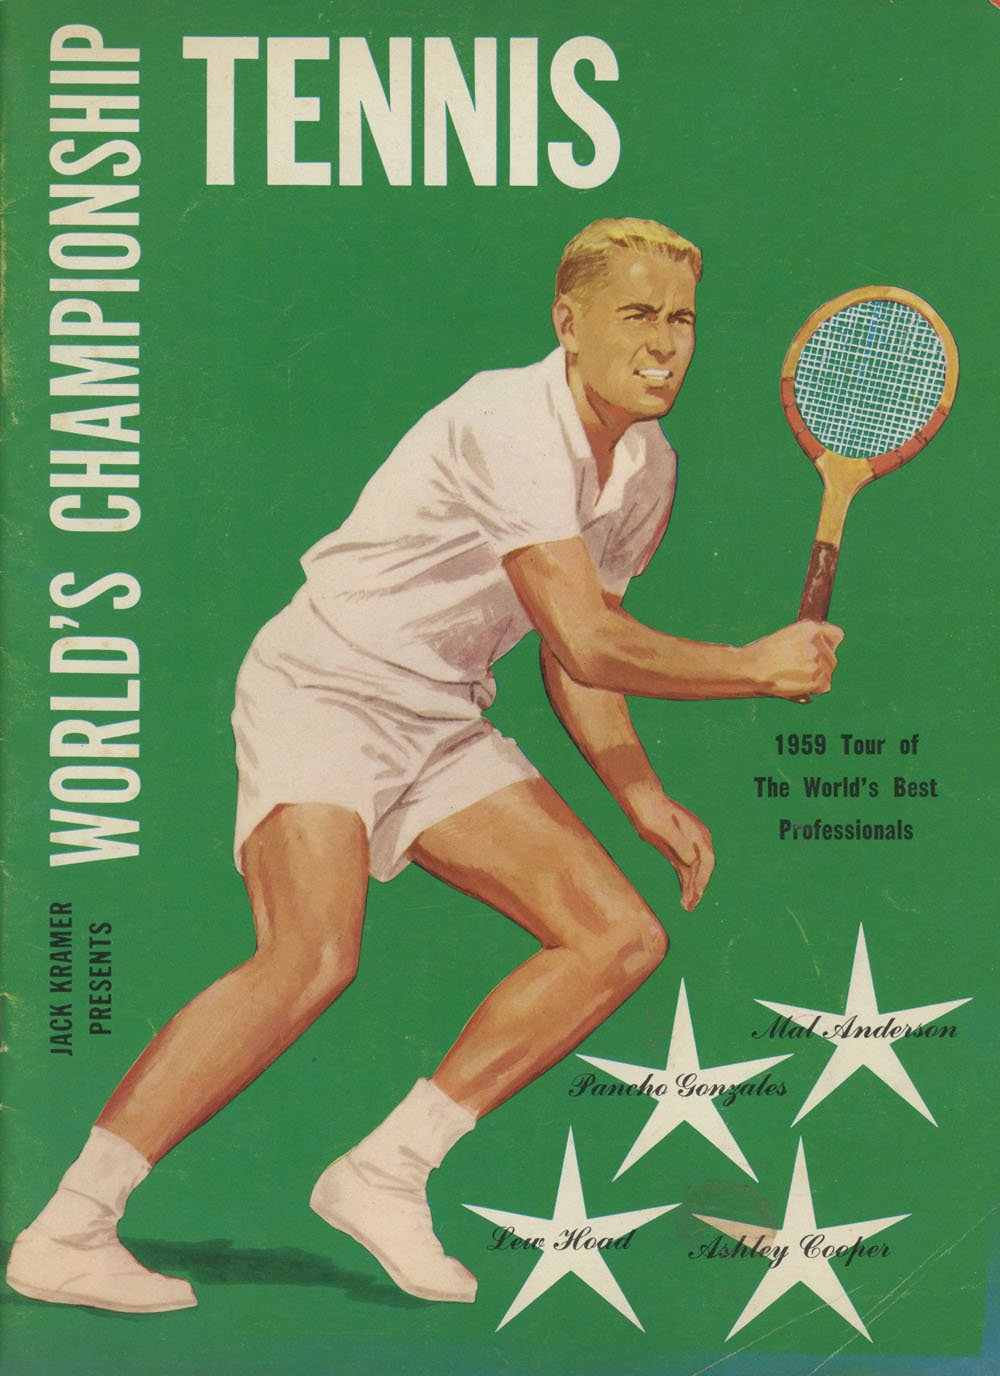 Jack Kramer Presents Worlds Championship Tennis, 1959 Tour Paperback – 1959